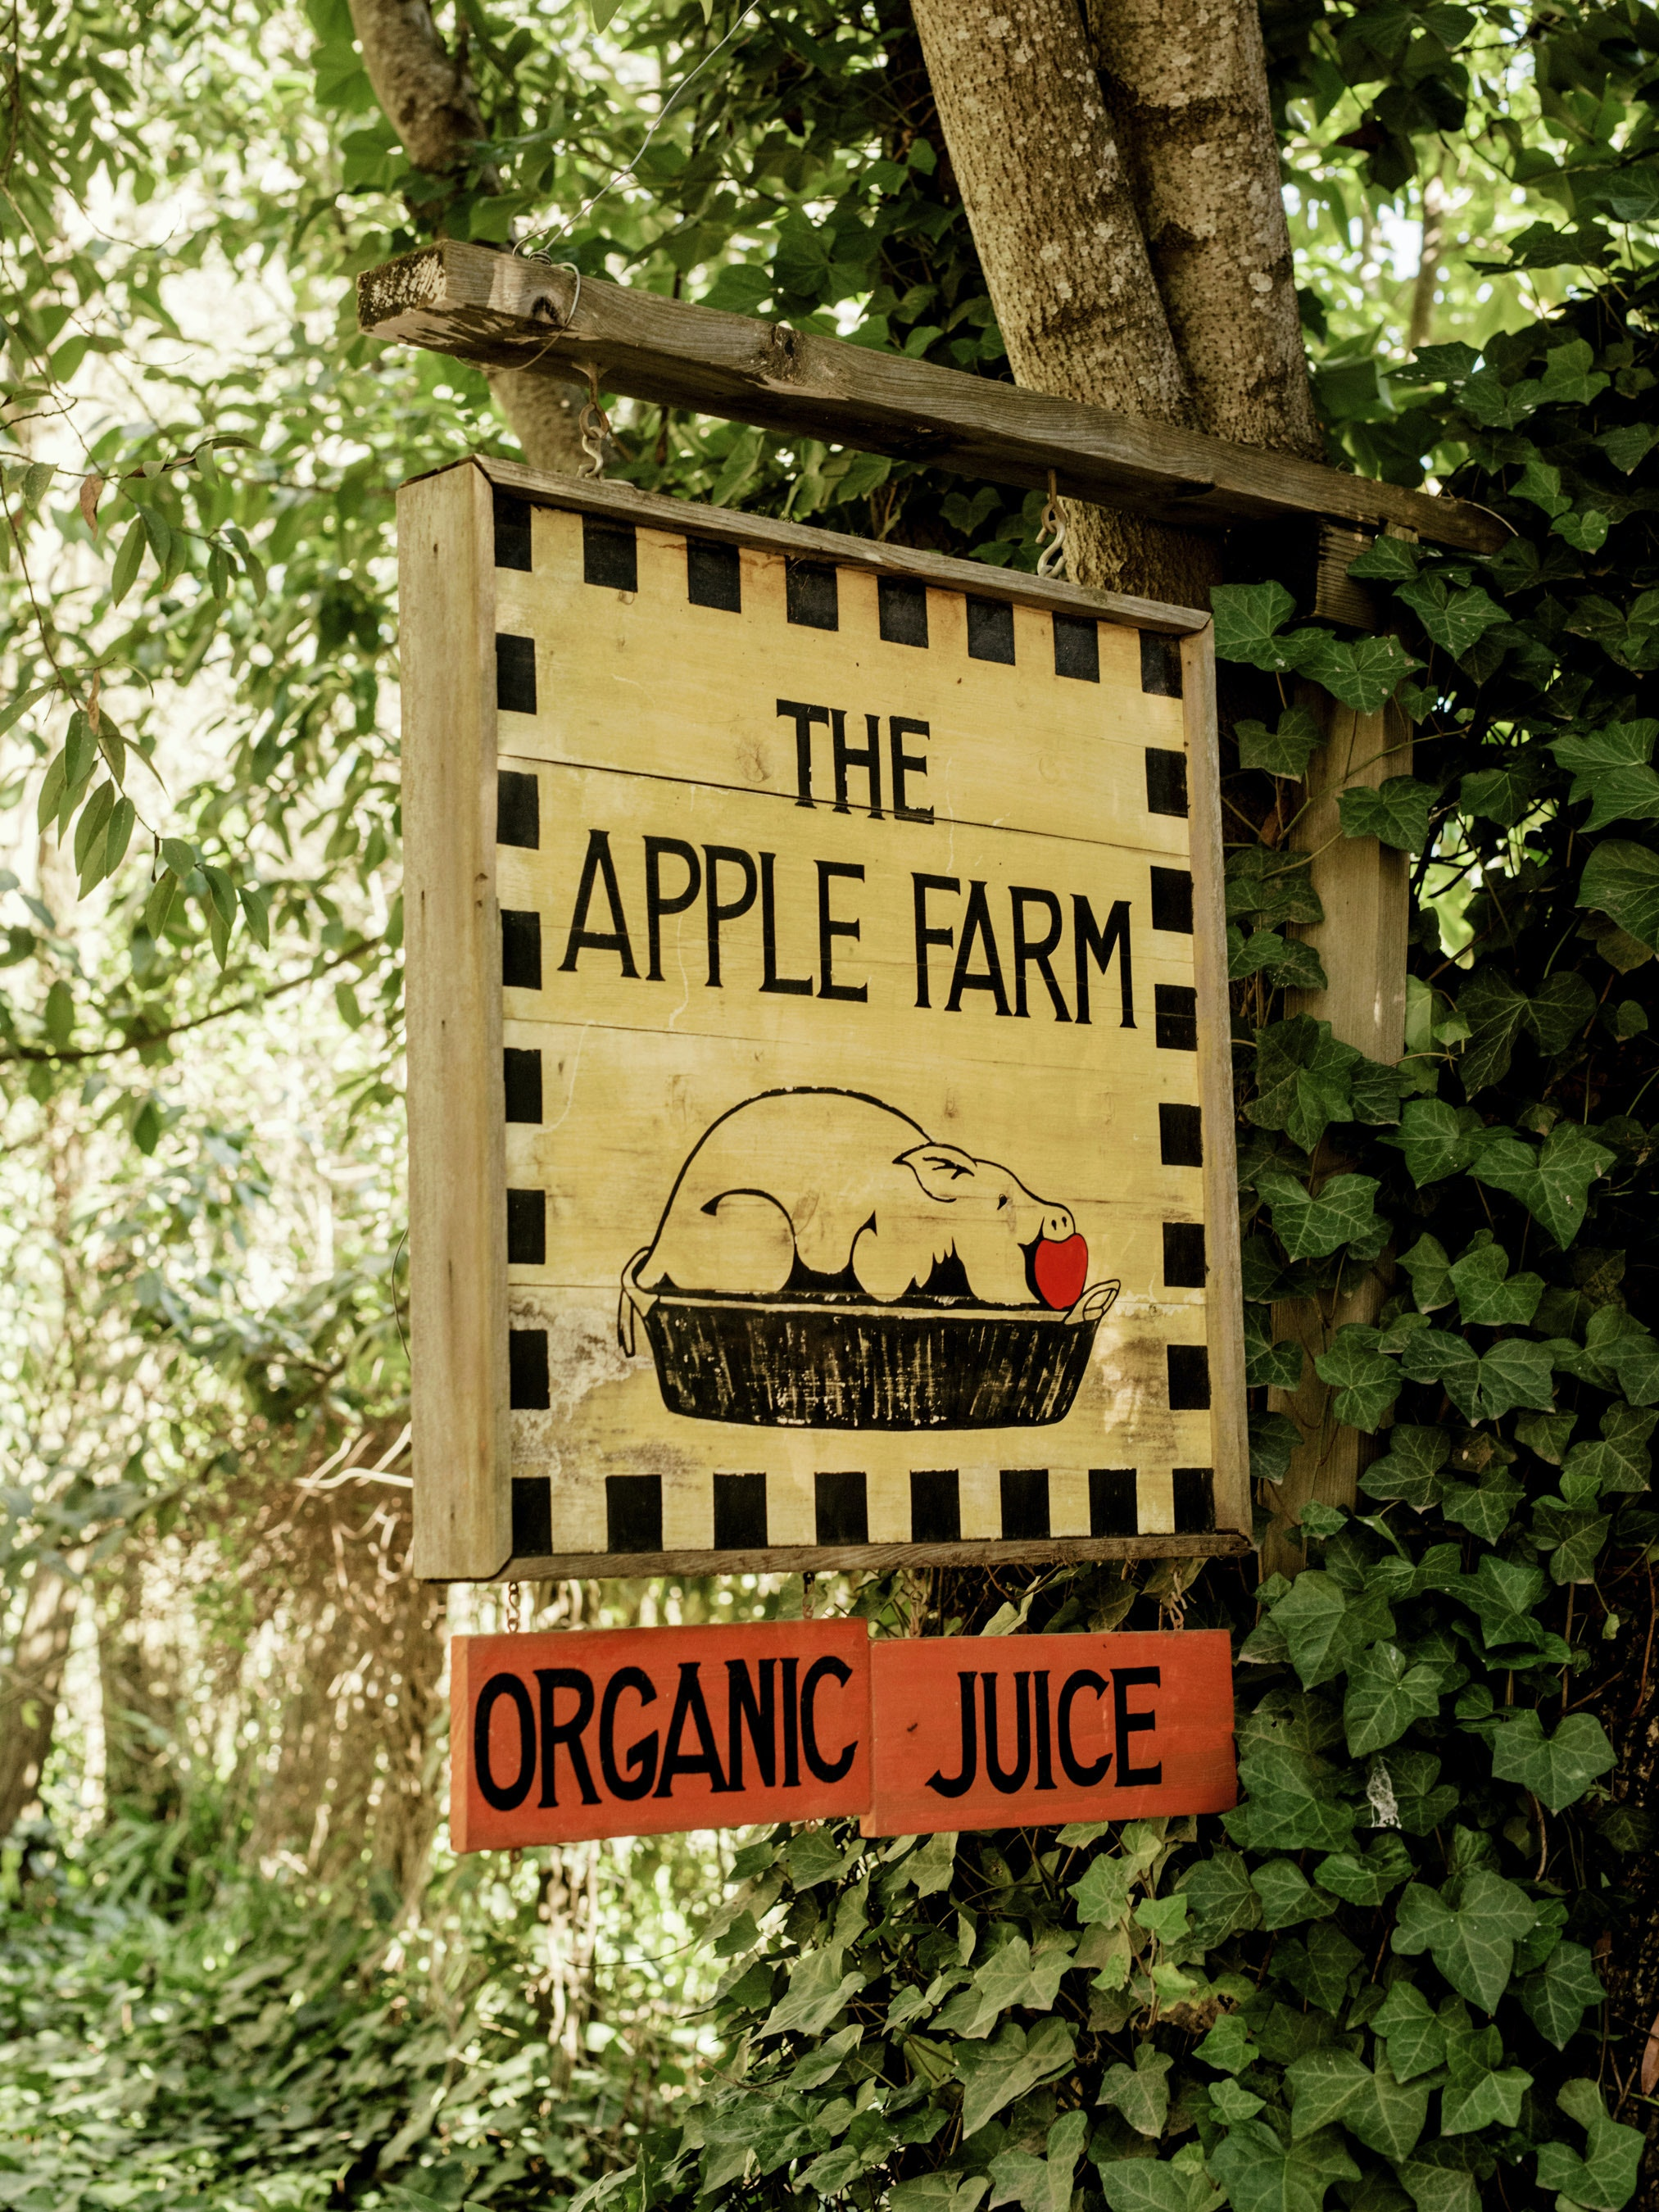 The Apple Farm, located in Philo, is a working farm and offers guest quarters and guided cooking lessons.